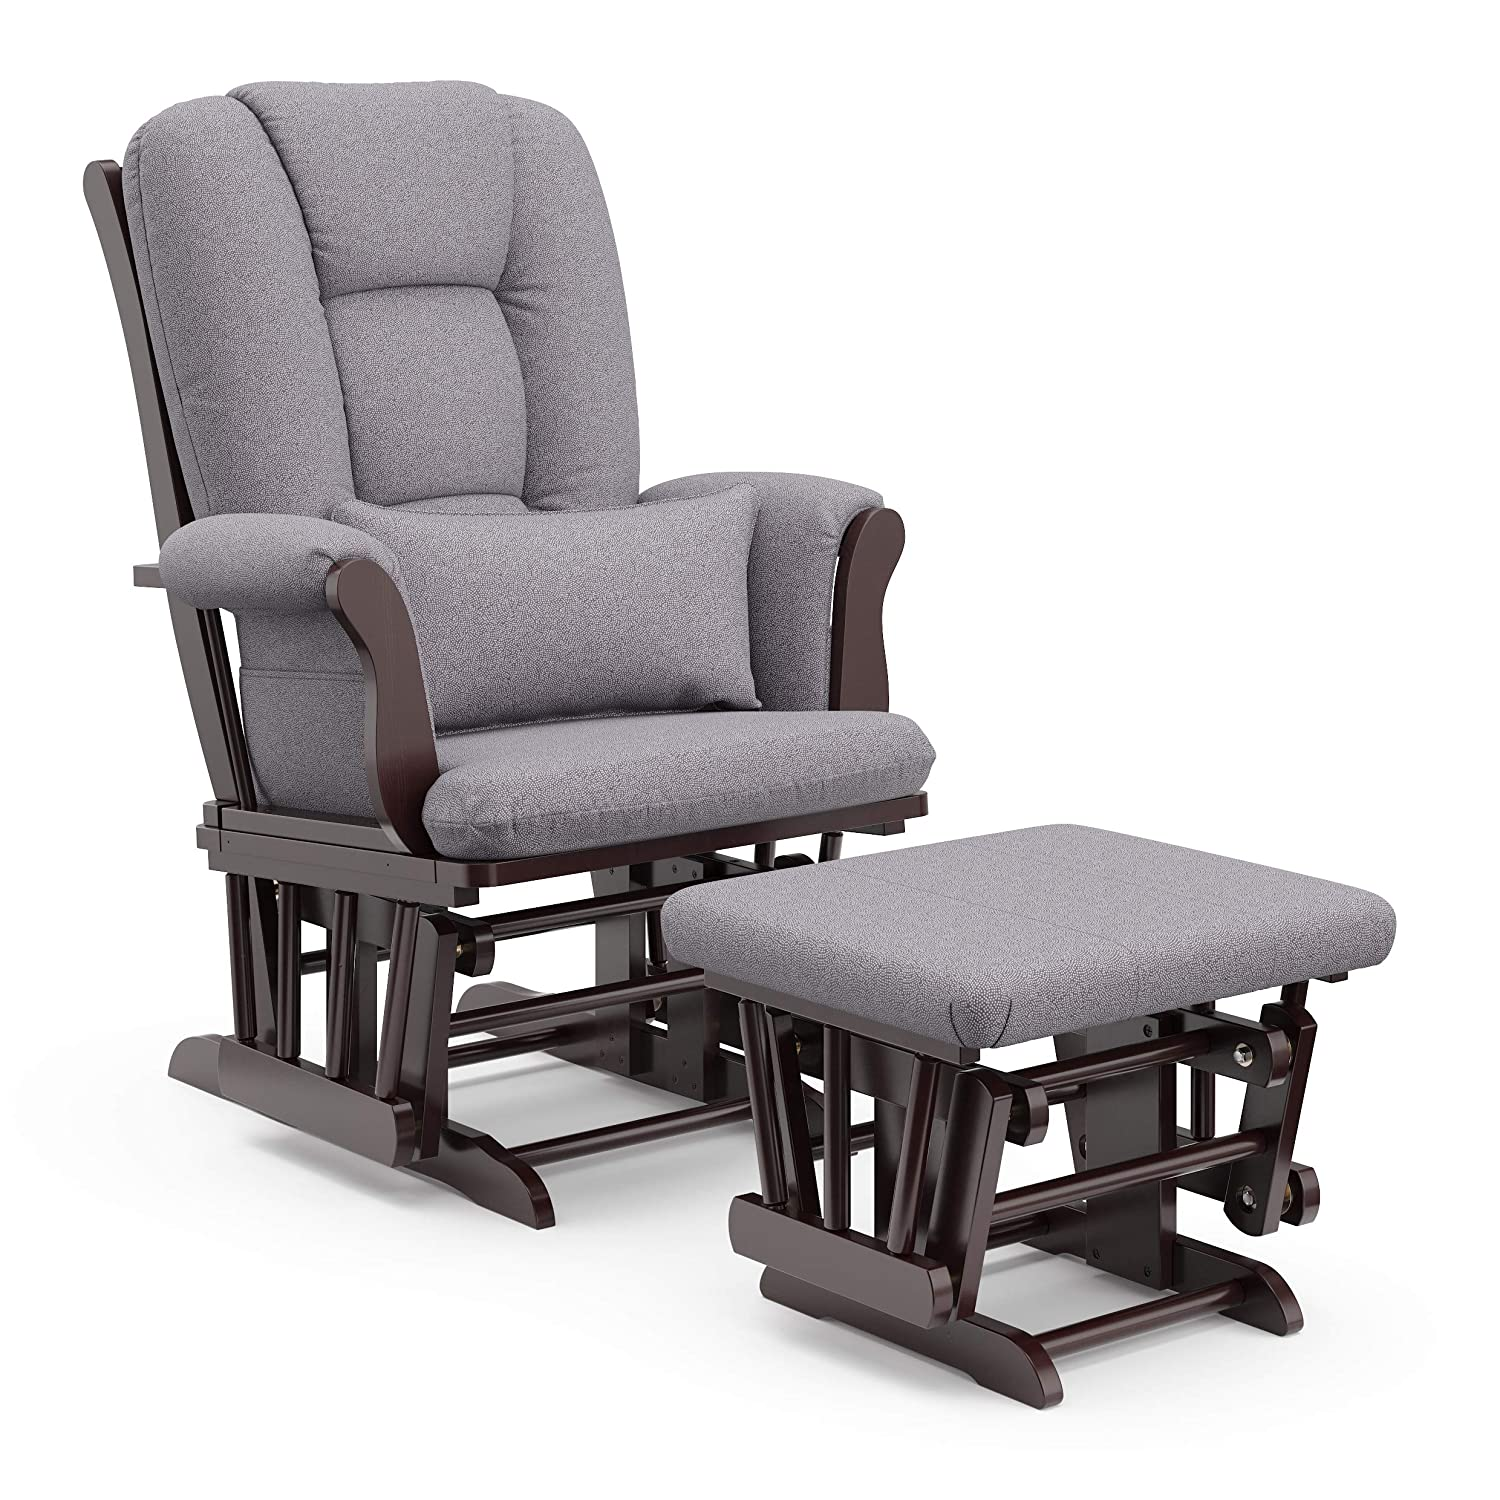 Storkcraft Tuscany Custom Glider and Ottoman with Free Lumbar Pillow, Espresso/Slate Gray Swirl